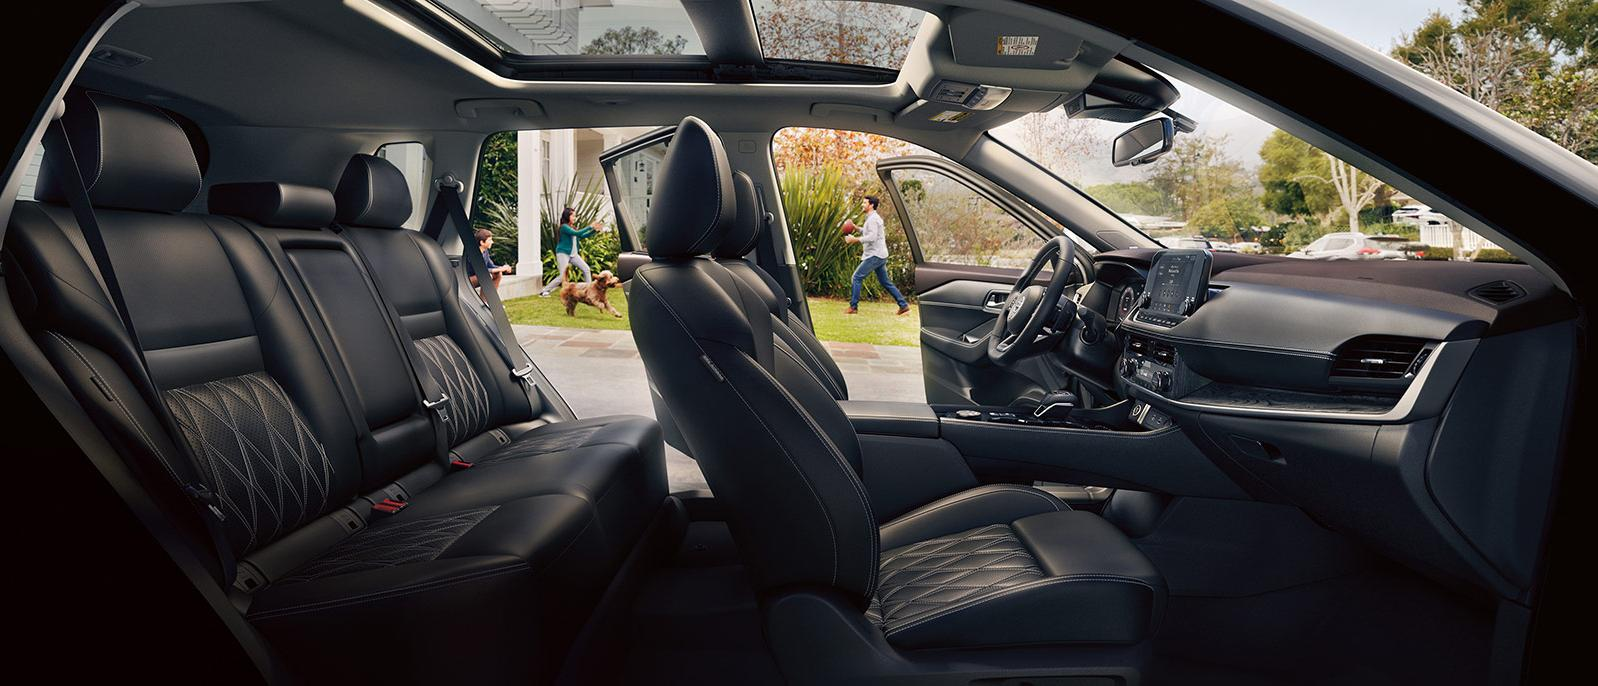 Profile view of the Nissan Rogue's luxurious seating.